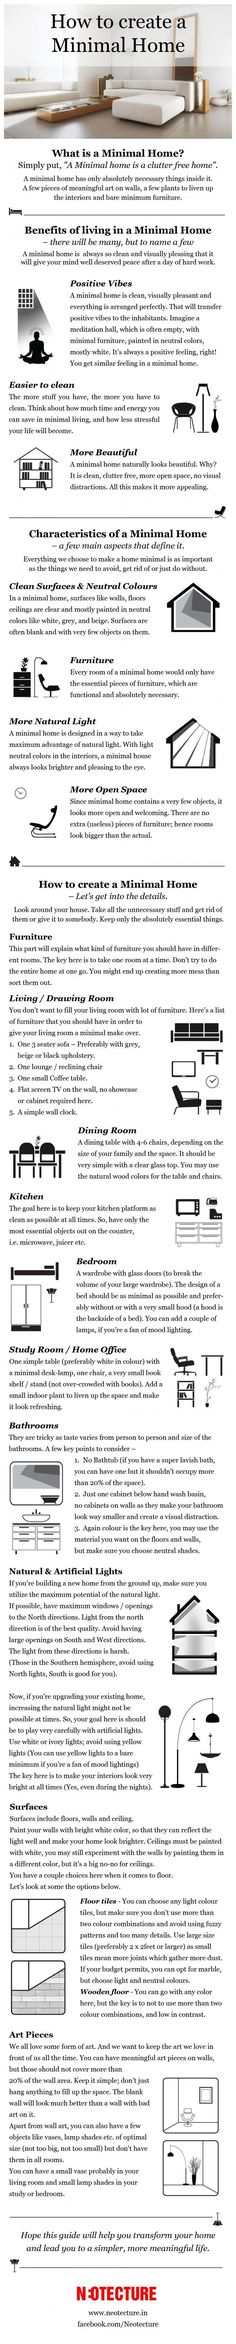 A Simple And Informative Guide On How To Create A Minimalistic Home - http://DesignTAXI.com